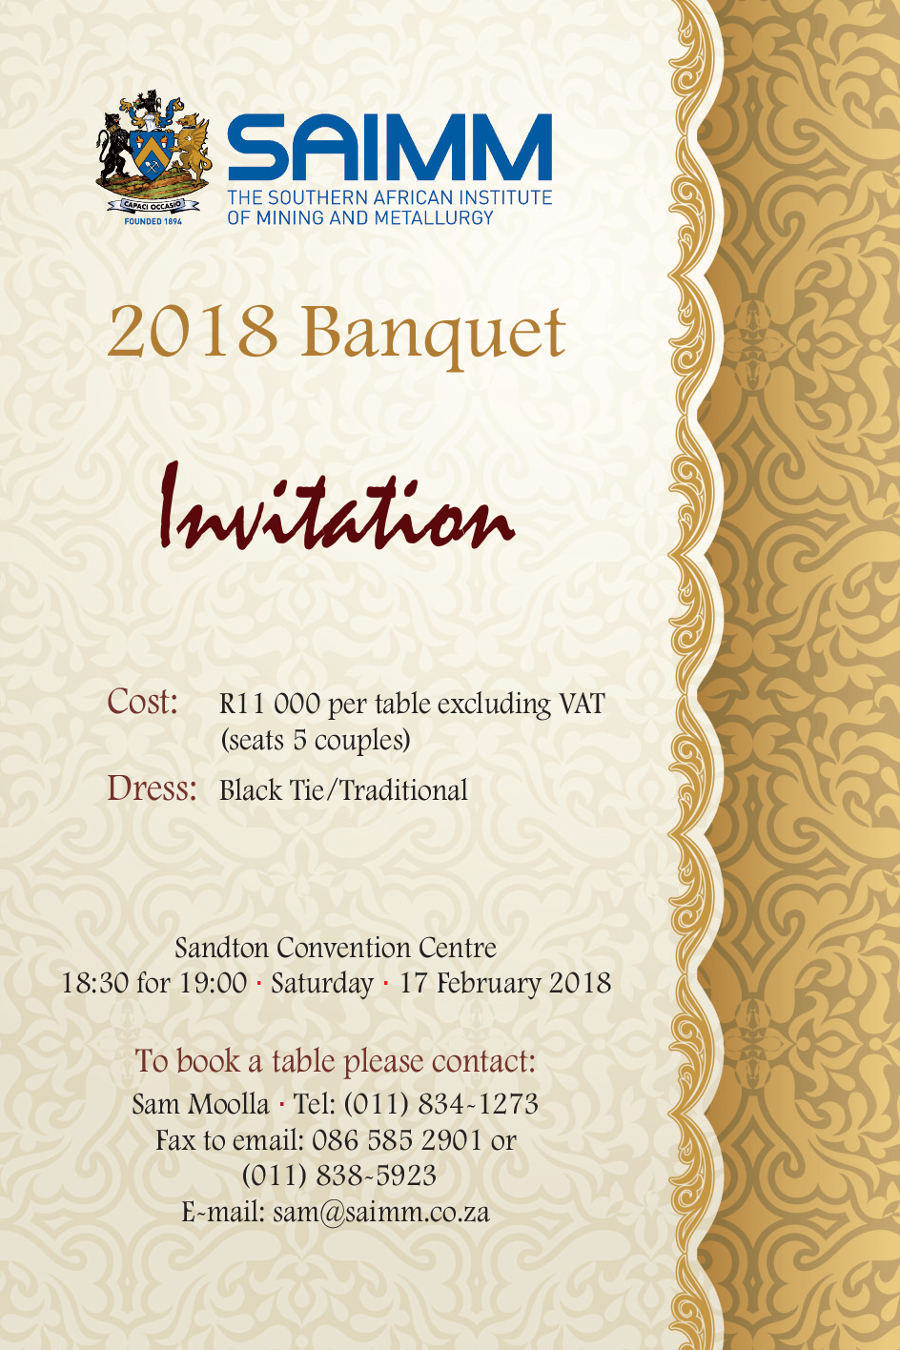 SAIMM Banquet Invitation 2018 2